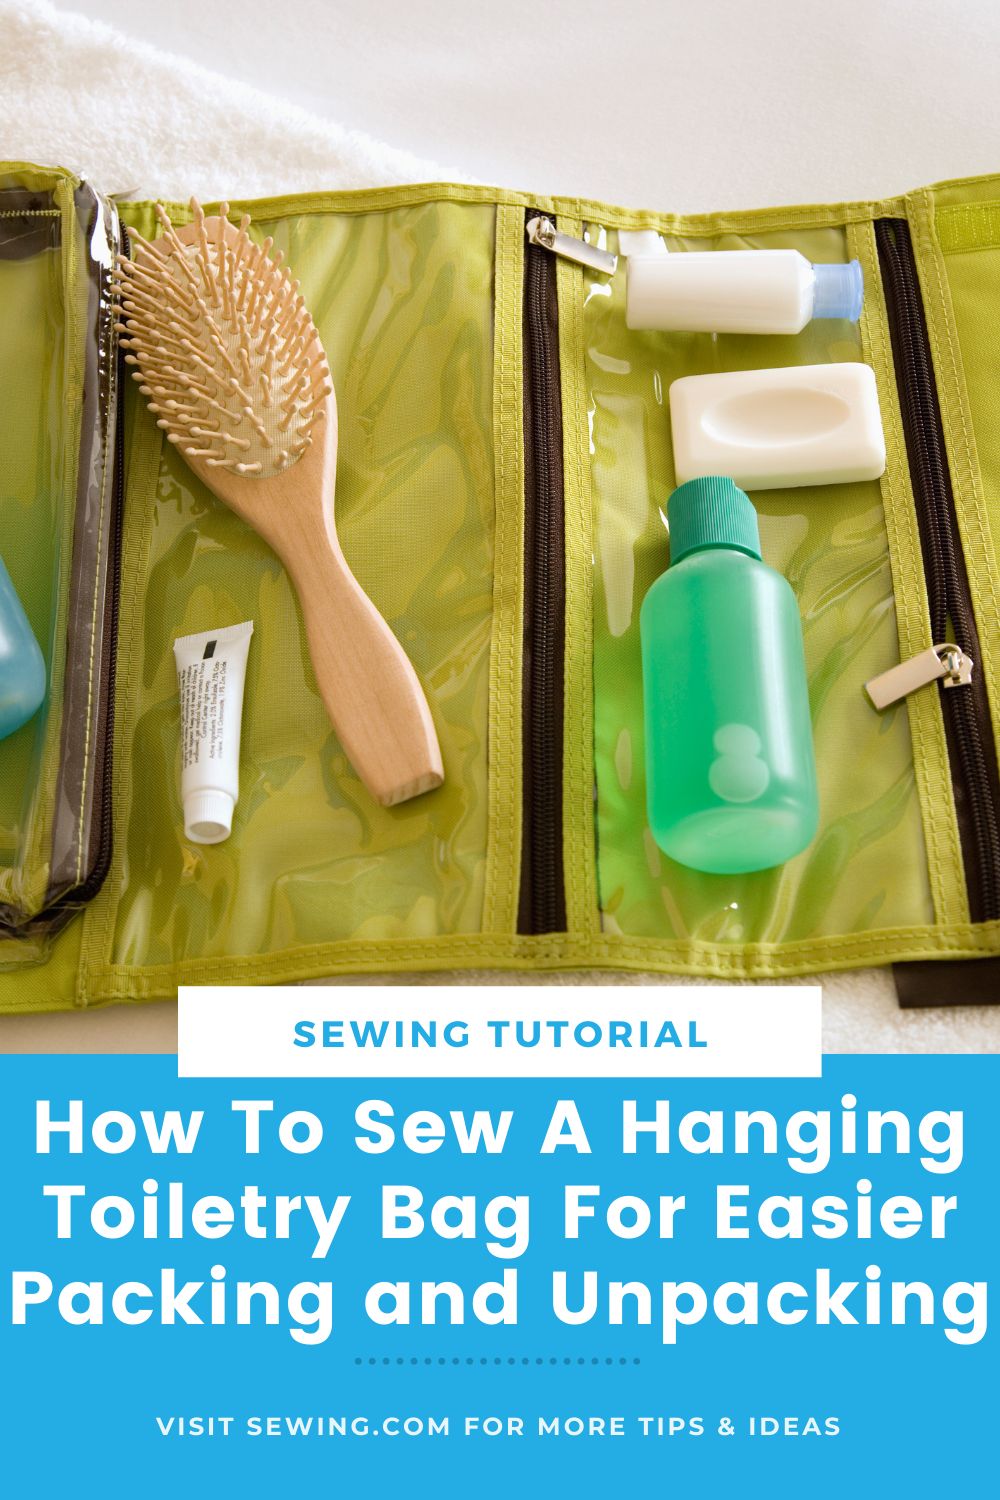 placard | How To Sew A Hanging Toiletry Bag For Easier Packing and Unpacking